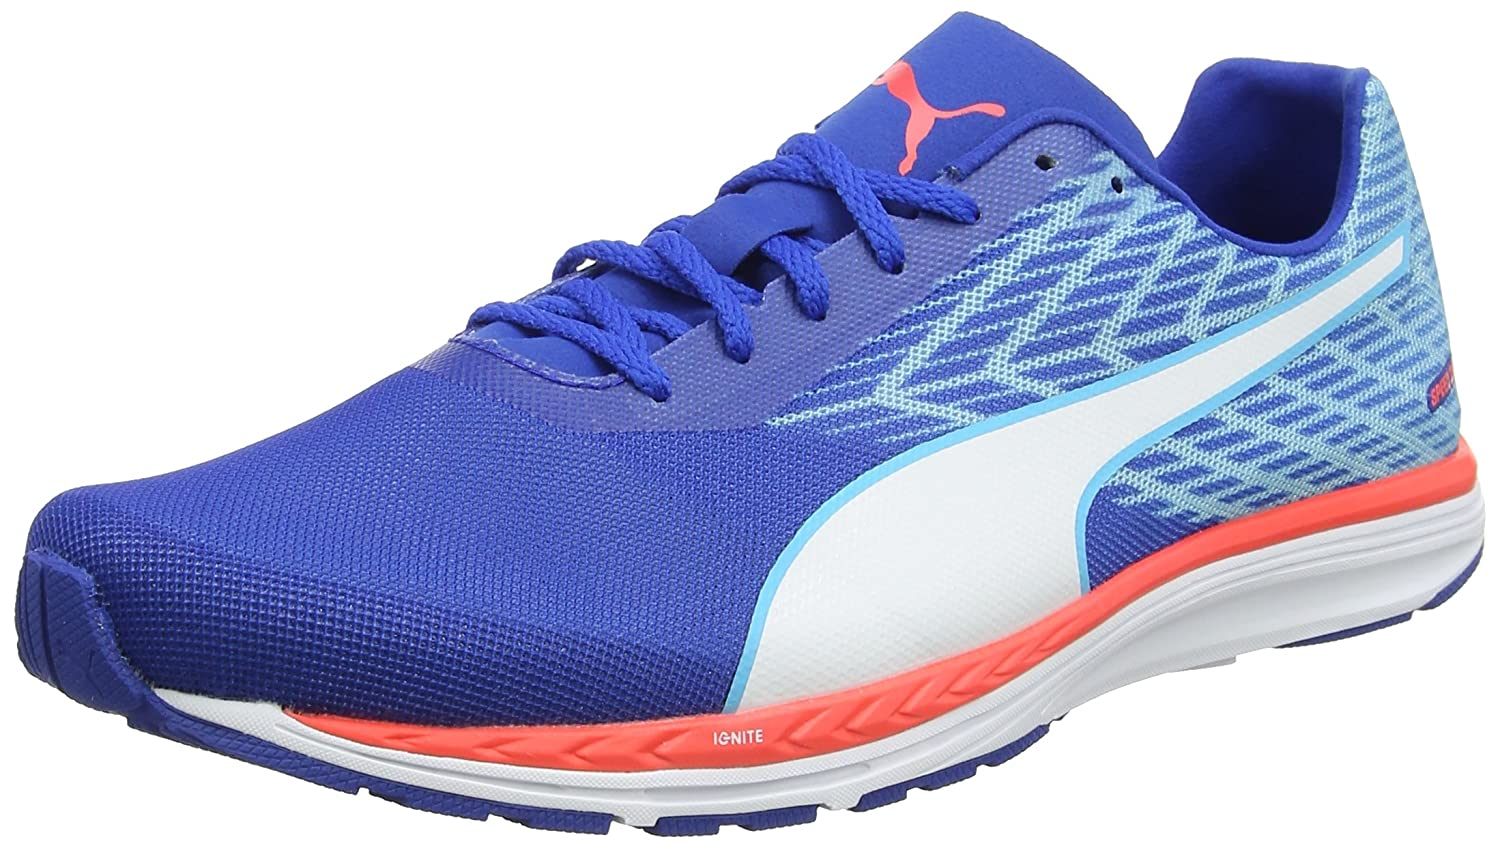 Puma Speed 100 R Ignite Scarpe Sportive Outdoor Uomo Blu d7i